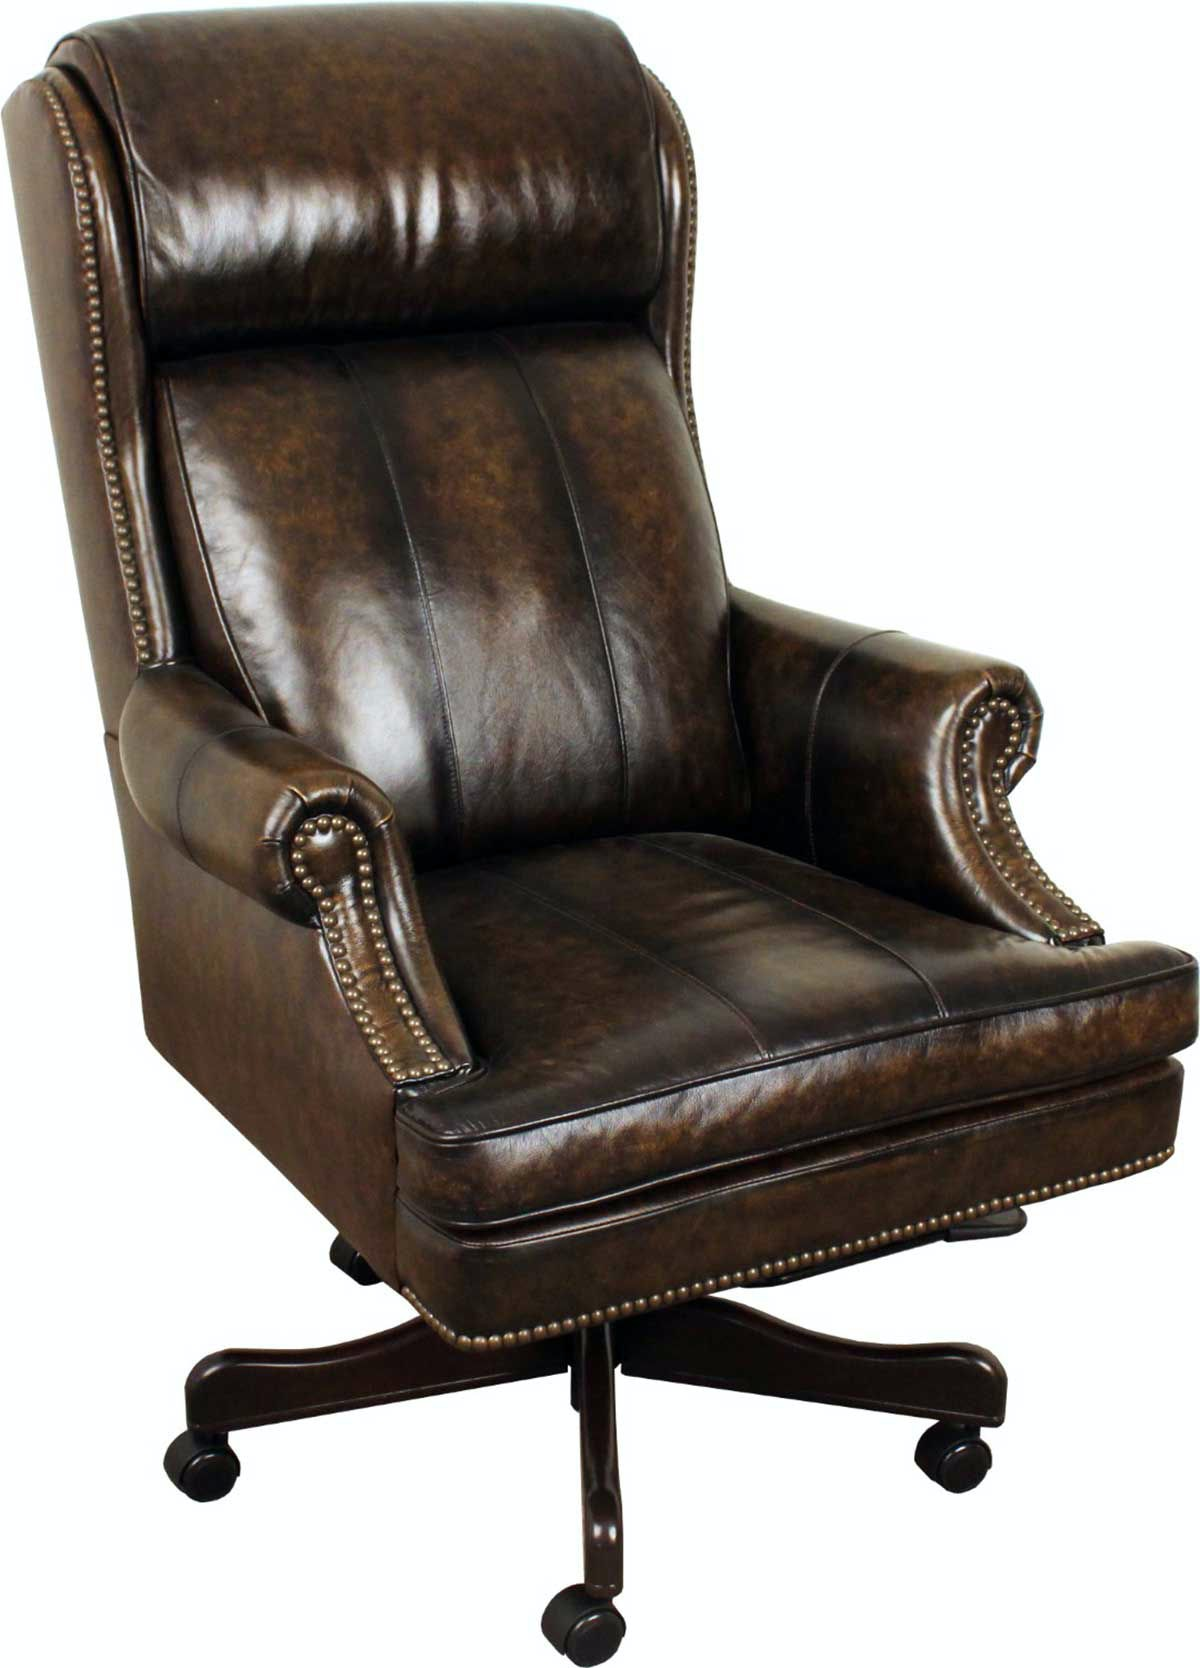 Chino Executive Desk Chair